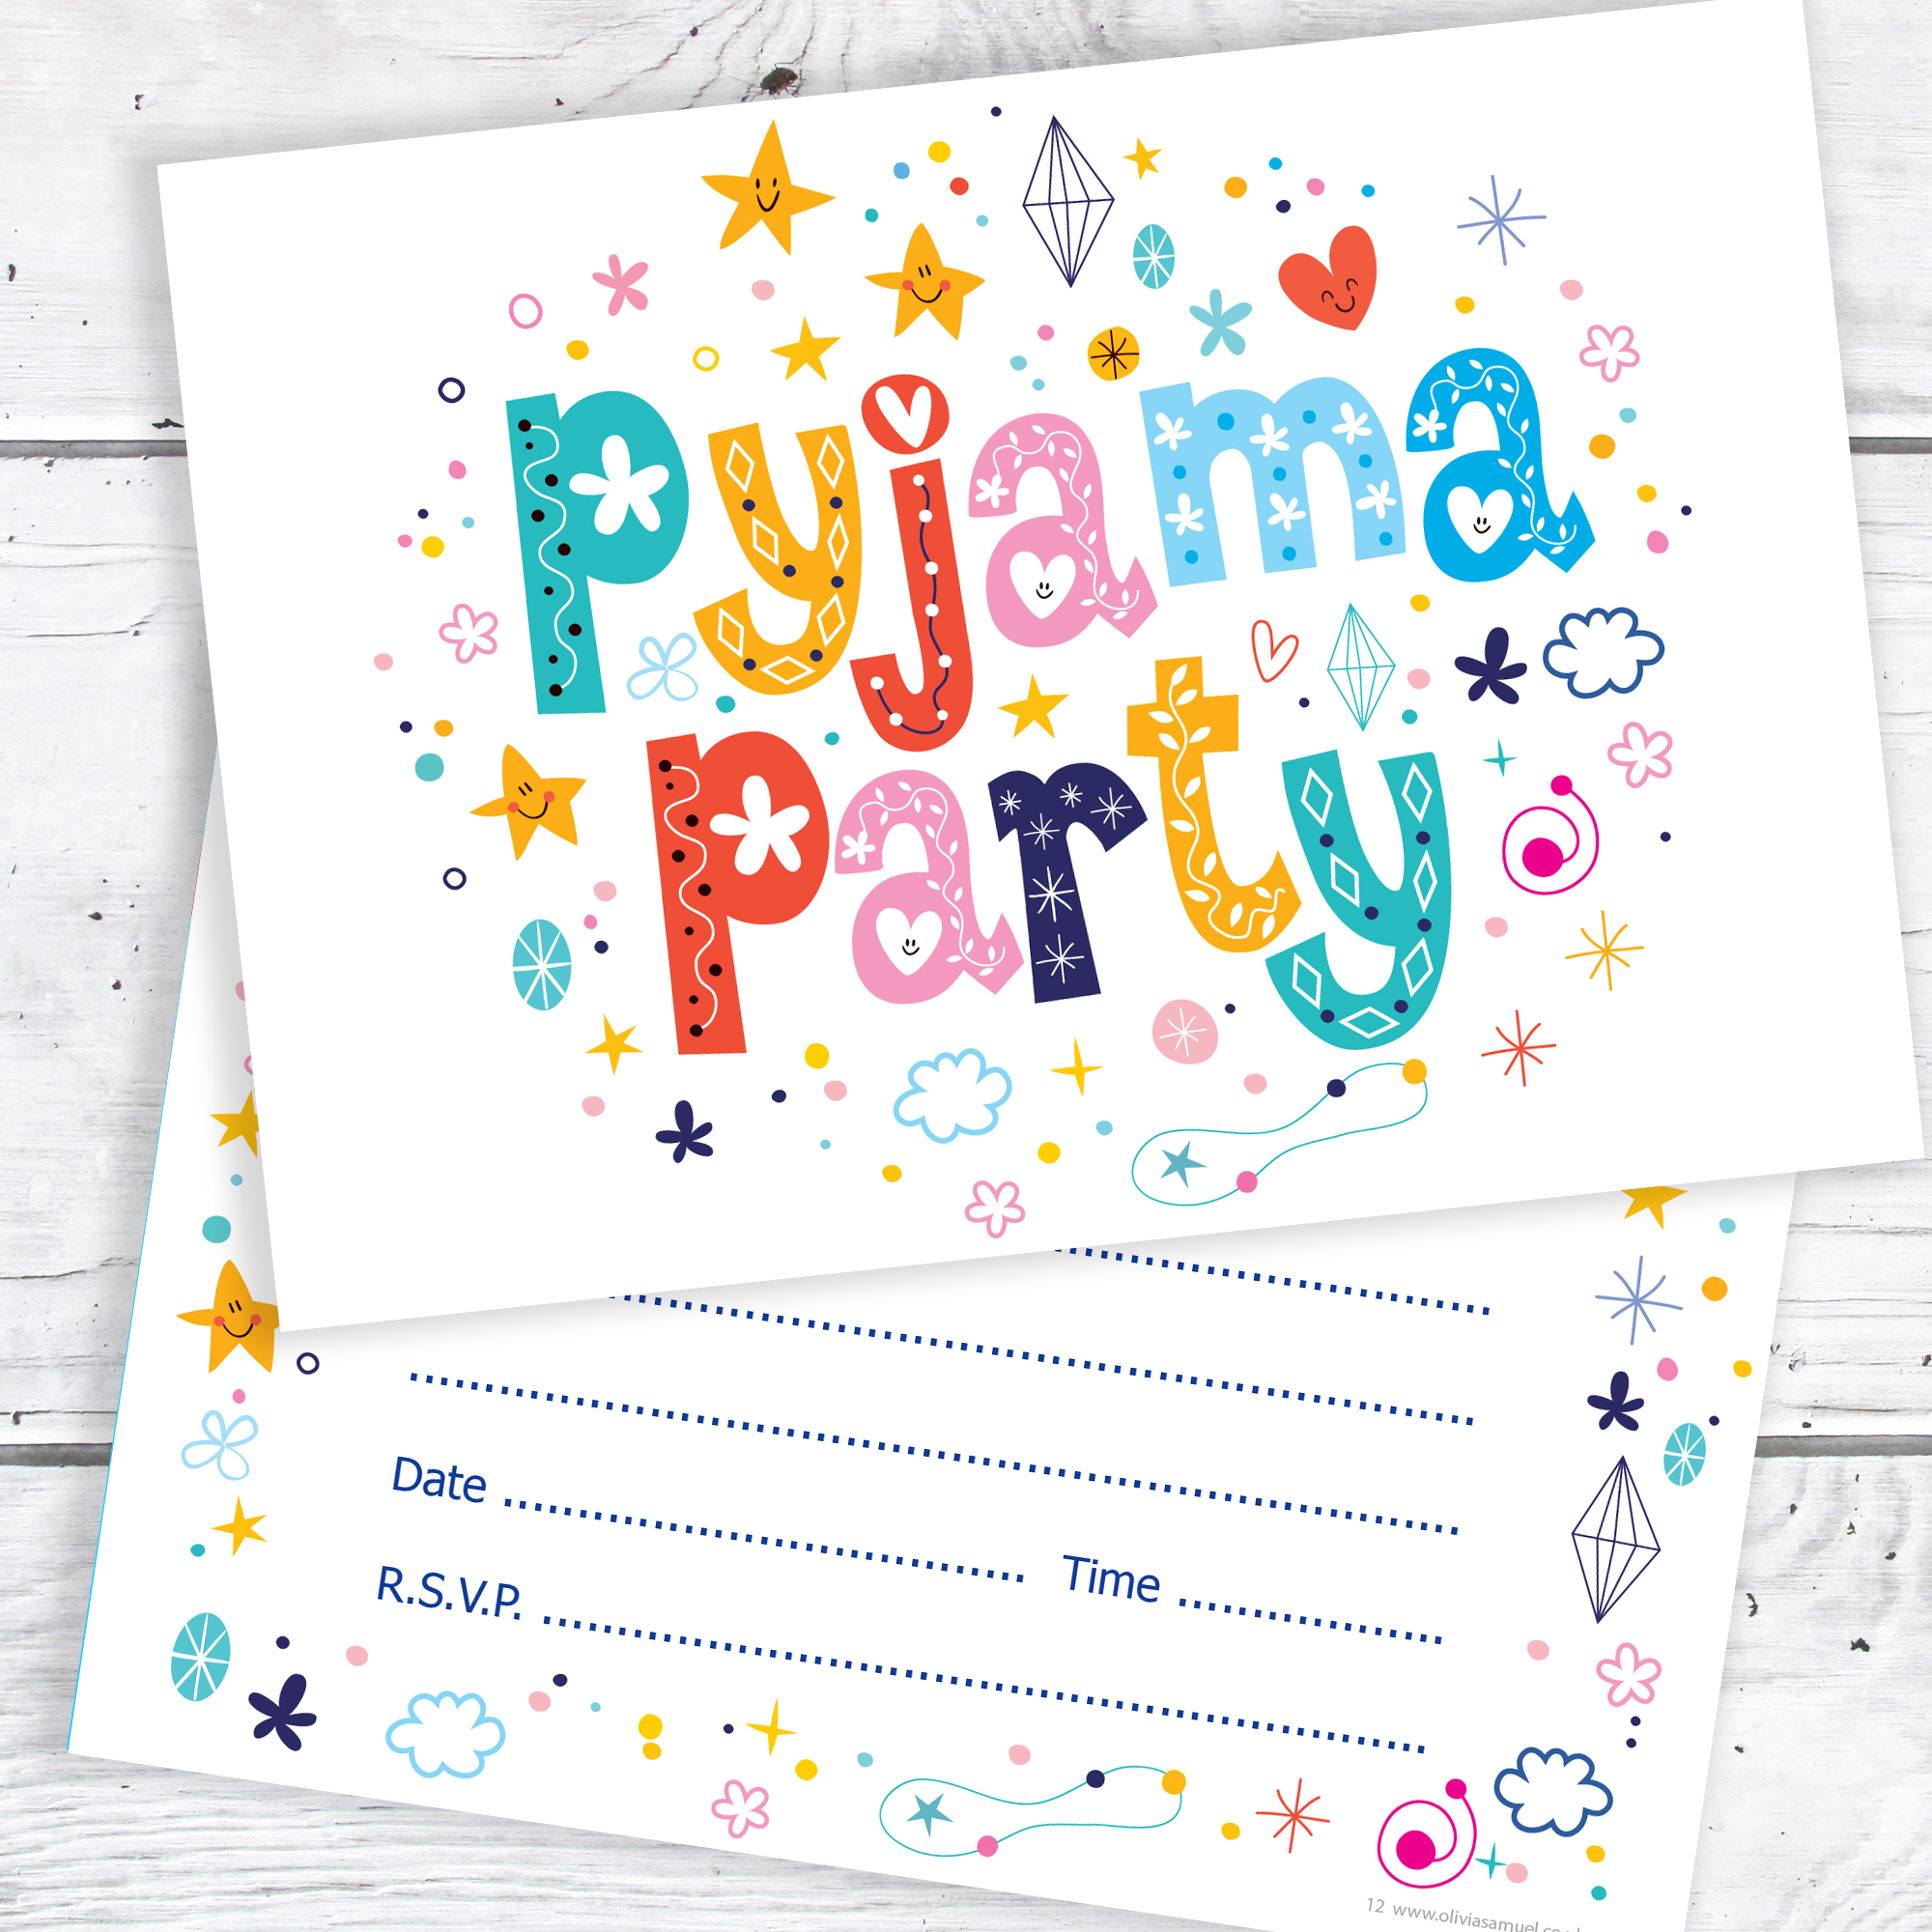 Pyjama Party Birthday Invitations A6 Postcard Size With Envelopes Pack Of 10 Childrens Invitation Kids Invite RTW0013